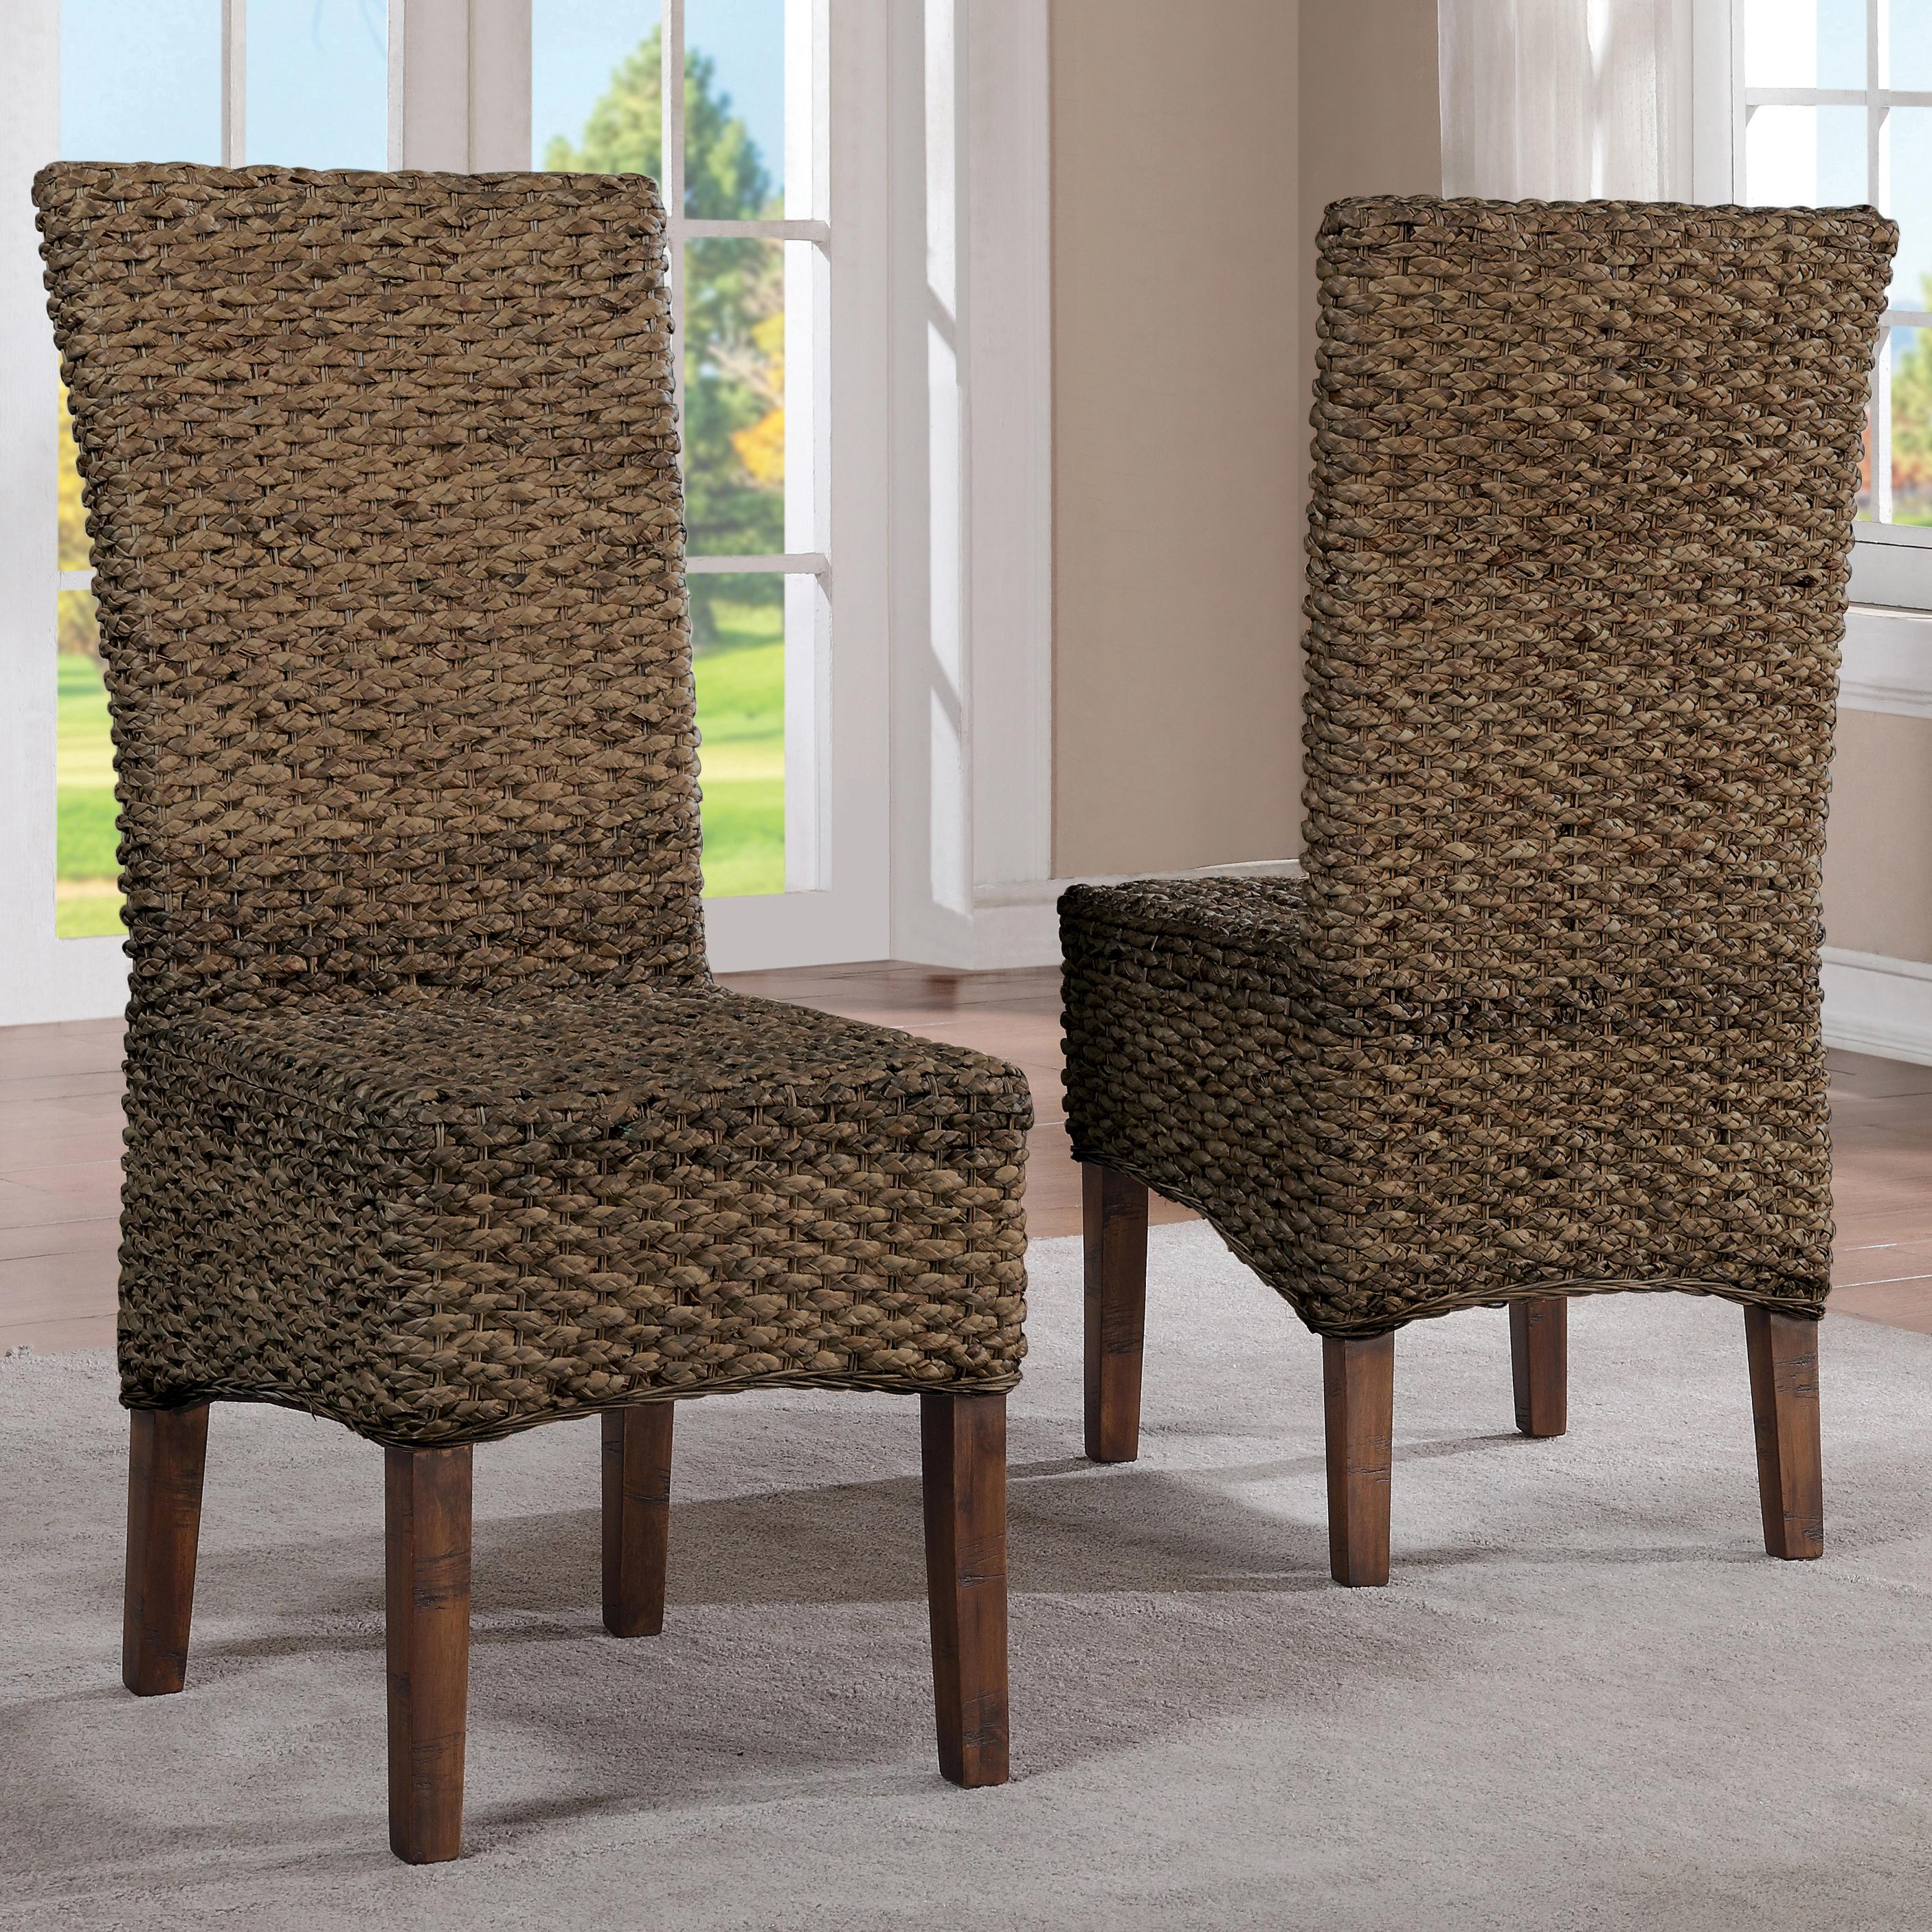 Riverside furniture mix n match chairs 36965 woven leaf for Matching dining room furniture